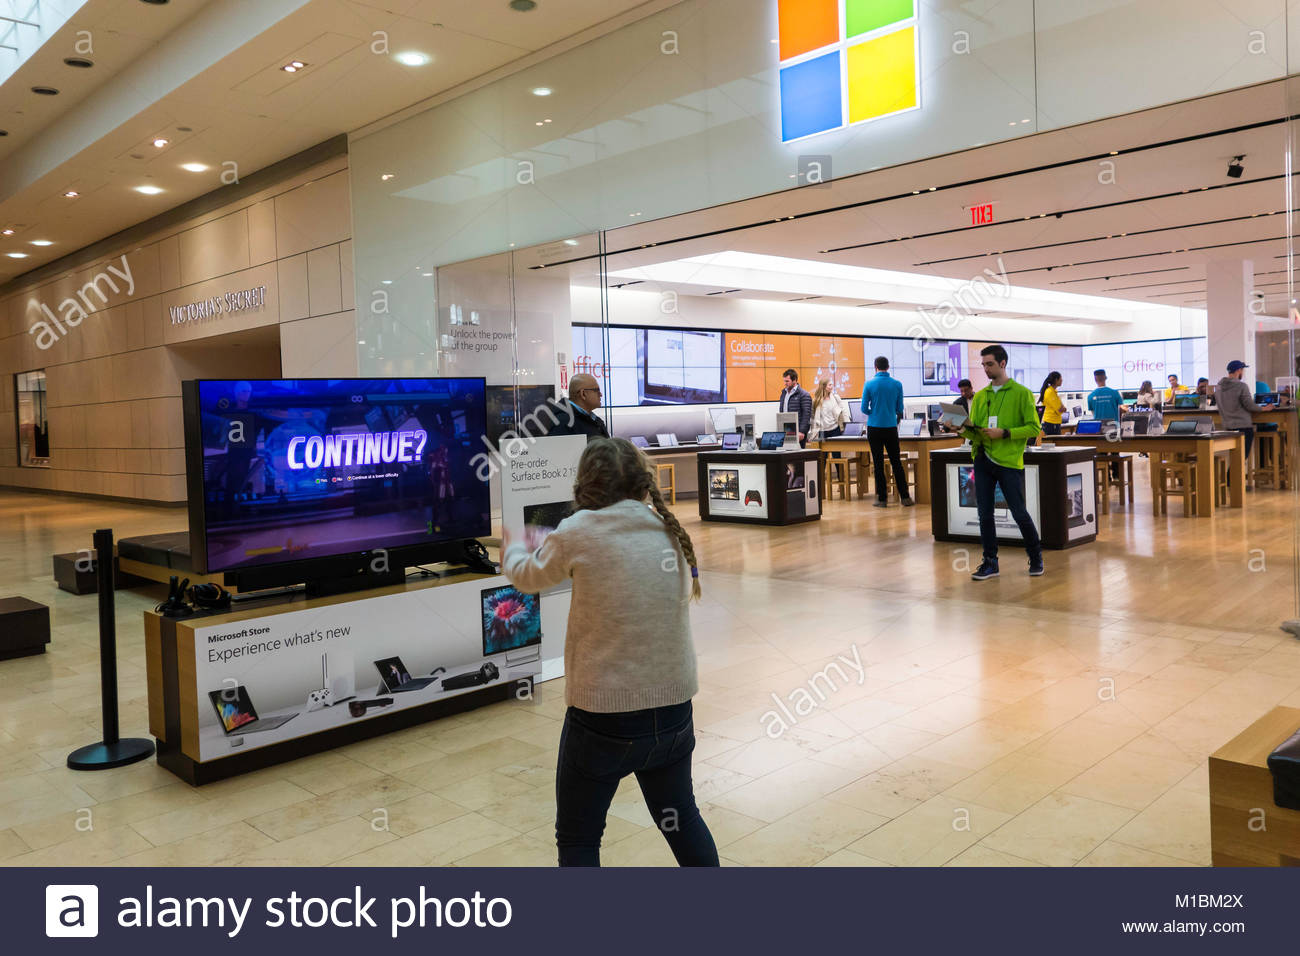 c051fd3ba6d Microsoft Store at Square One Shopping Centre in Mississauga Ontario Canada  - Stock Image